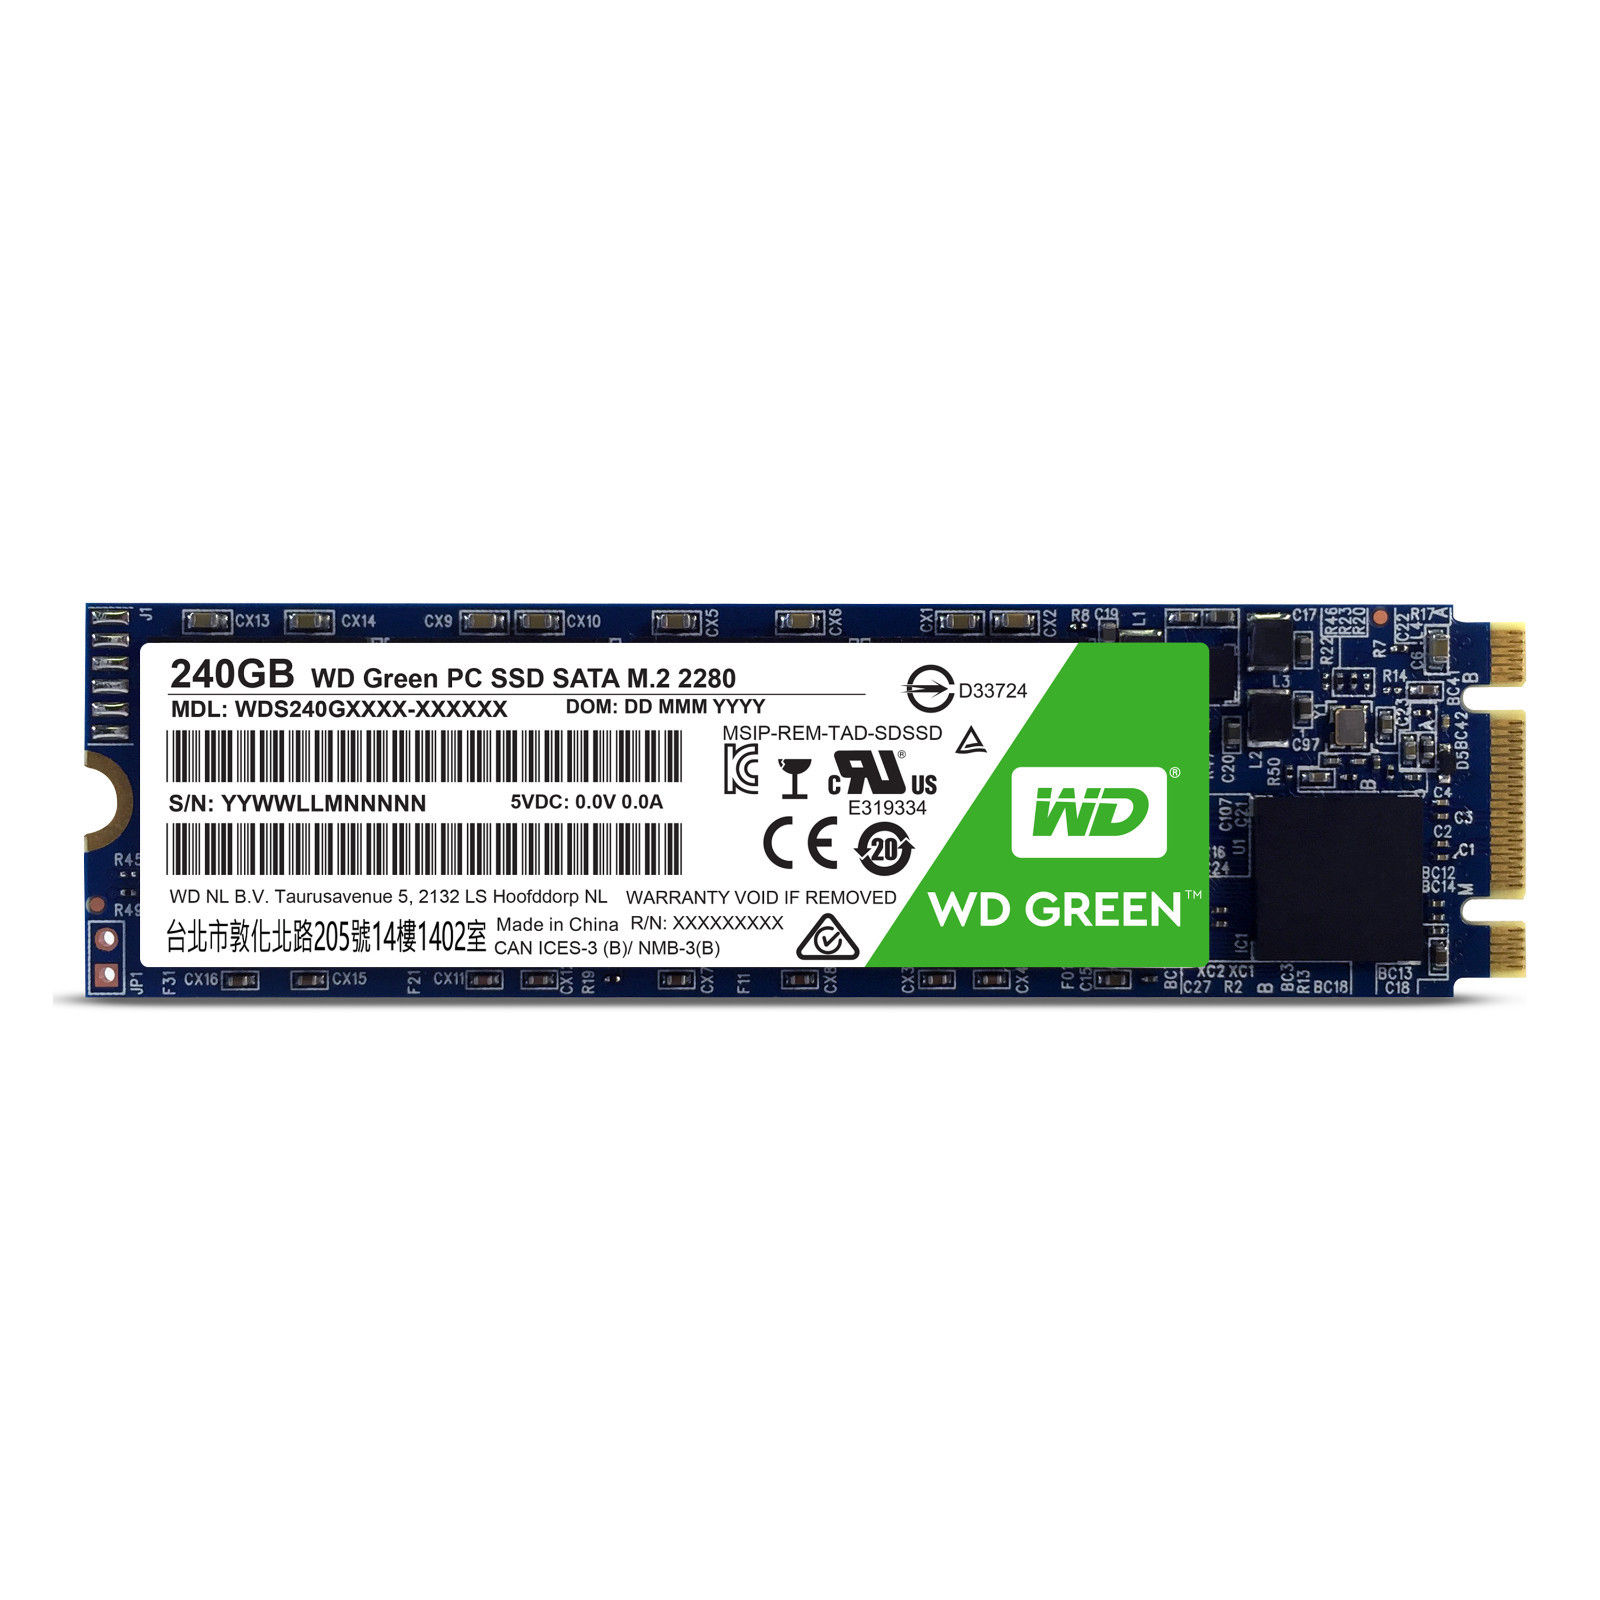 WD Green SSD 240GB Western Digital Internal Solid State Drive Laptop M.2 SATA III 545MB/s